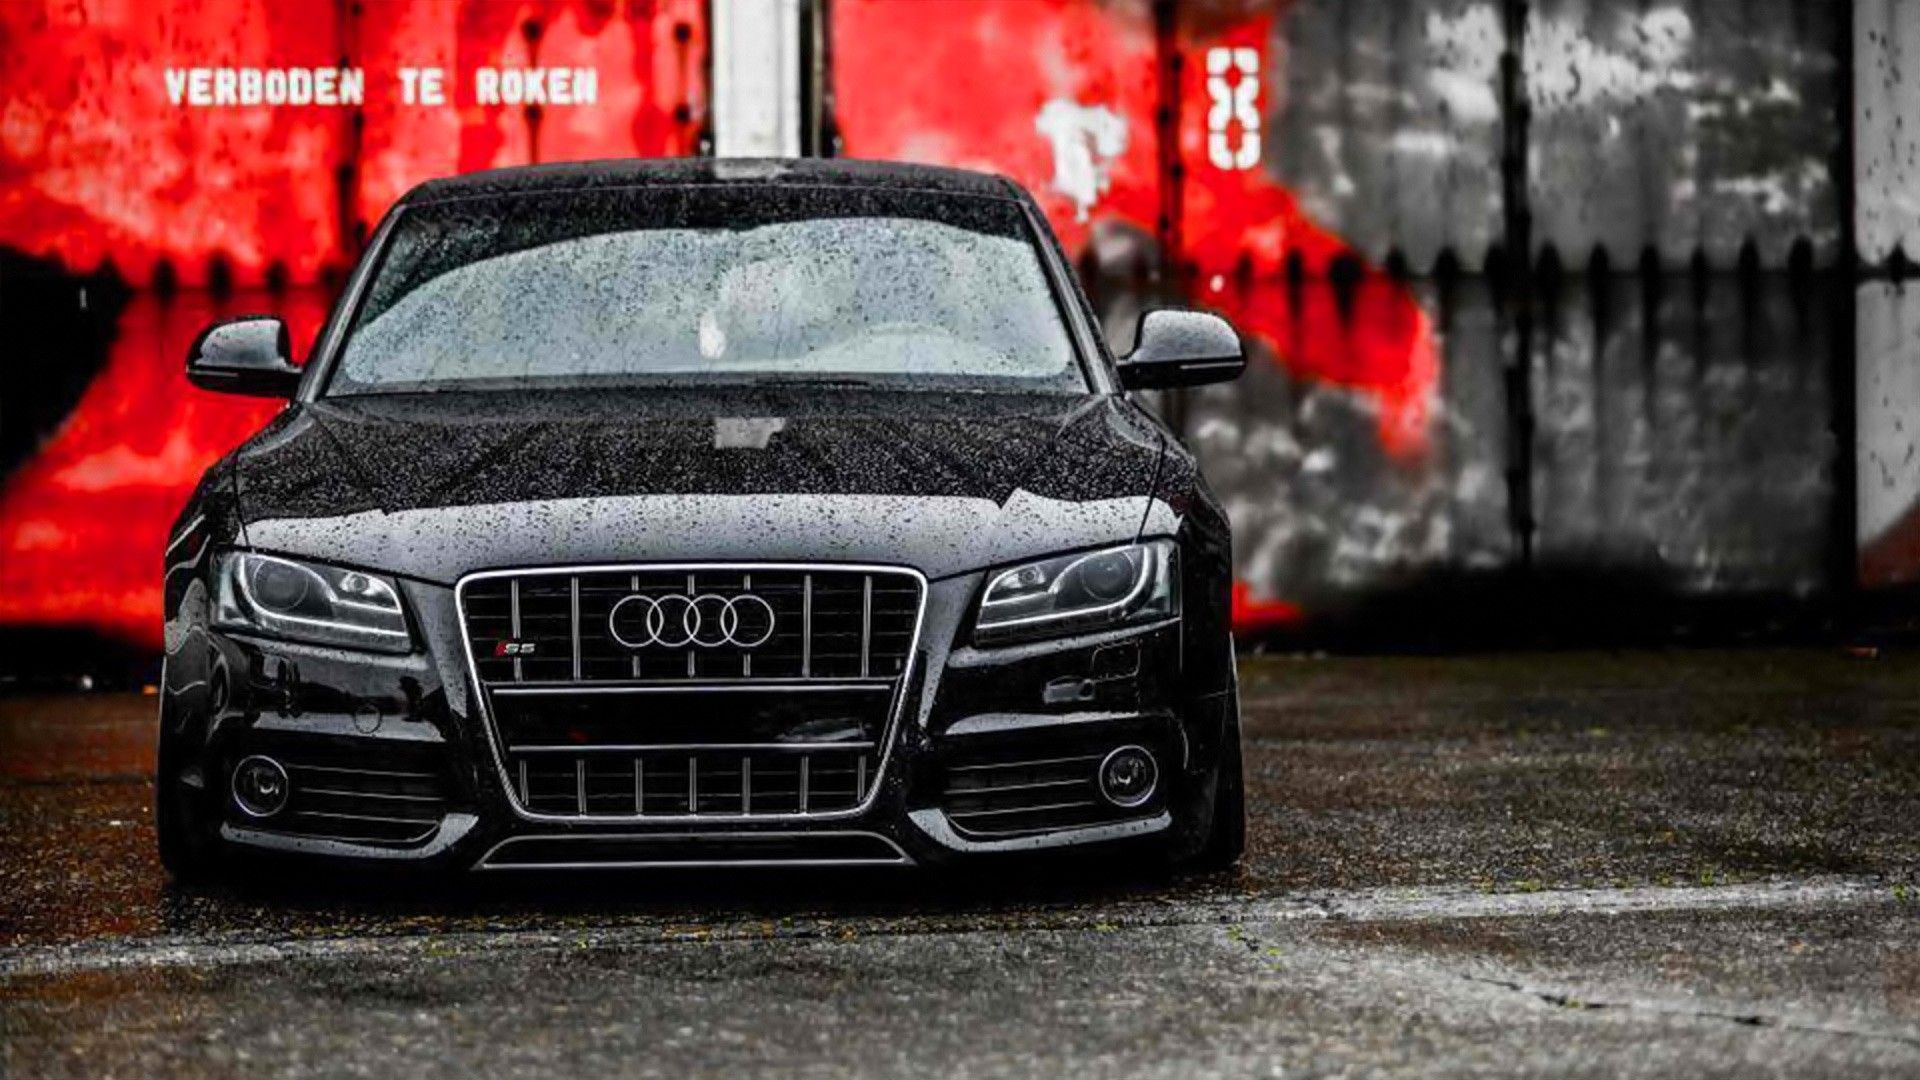 Audi S4 Wallpapers 6